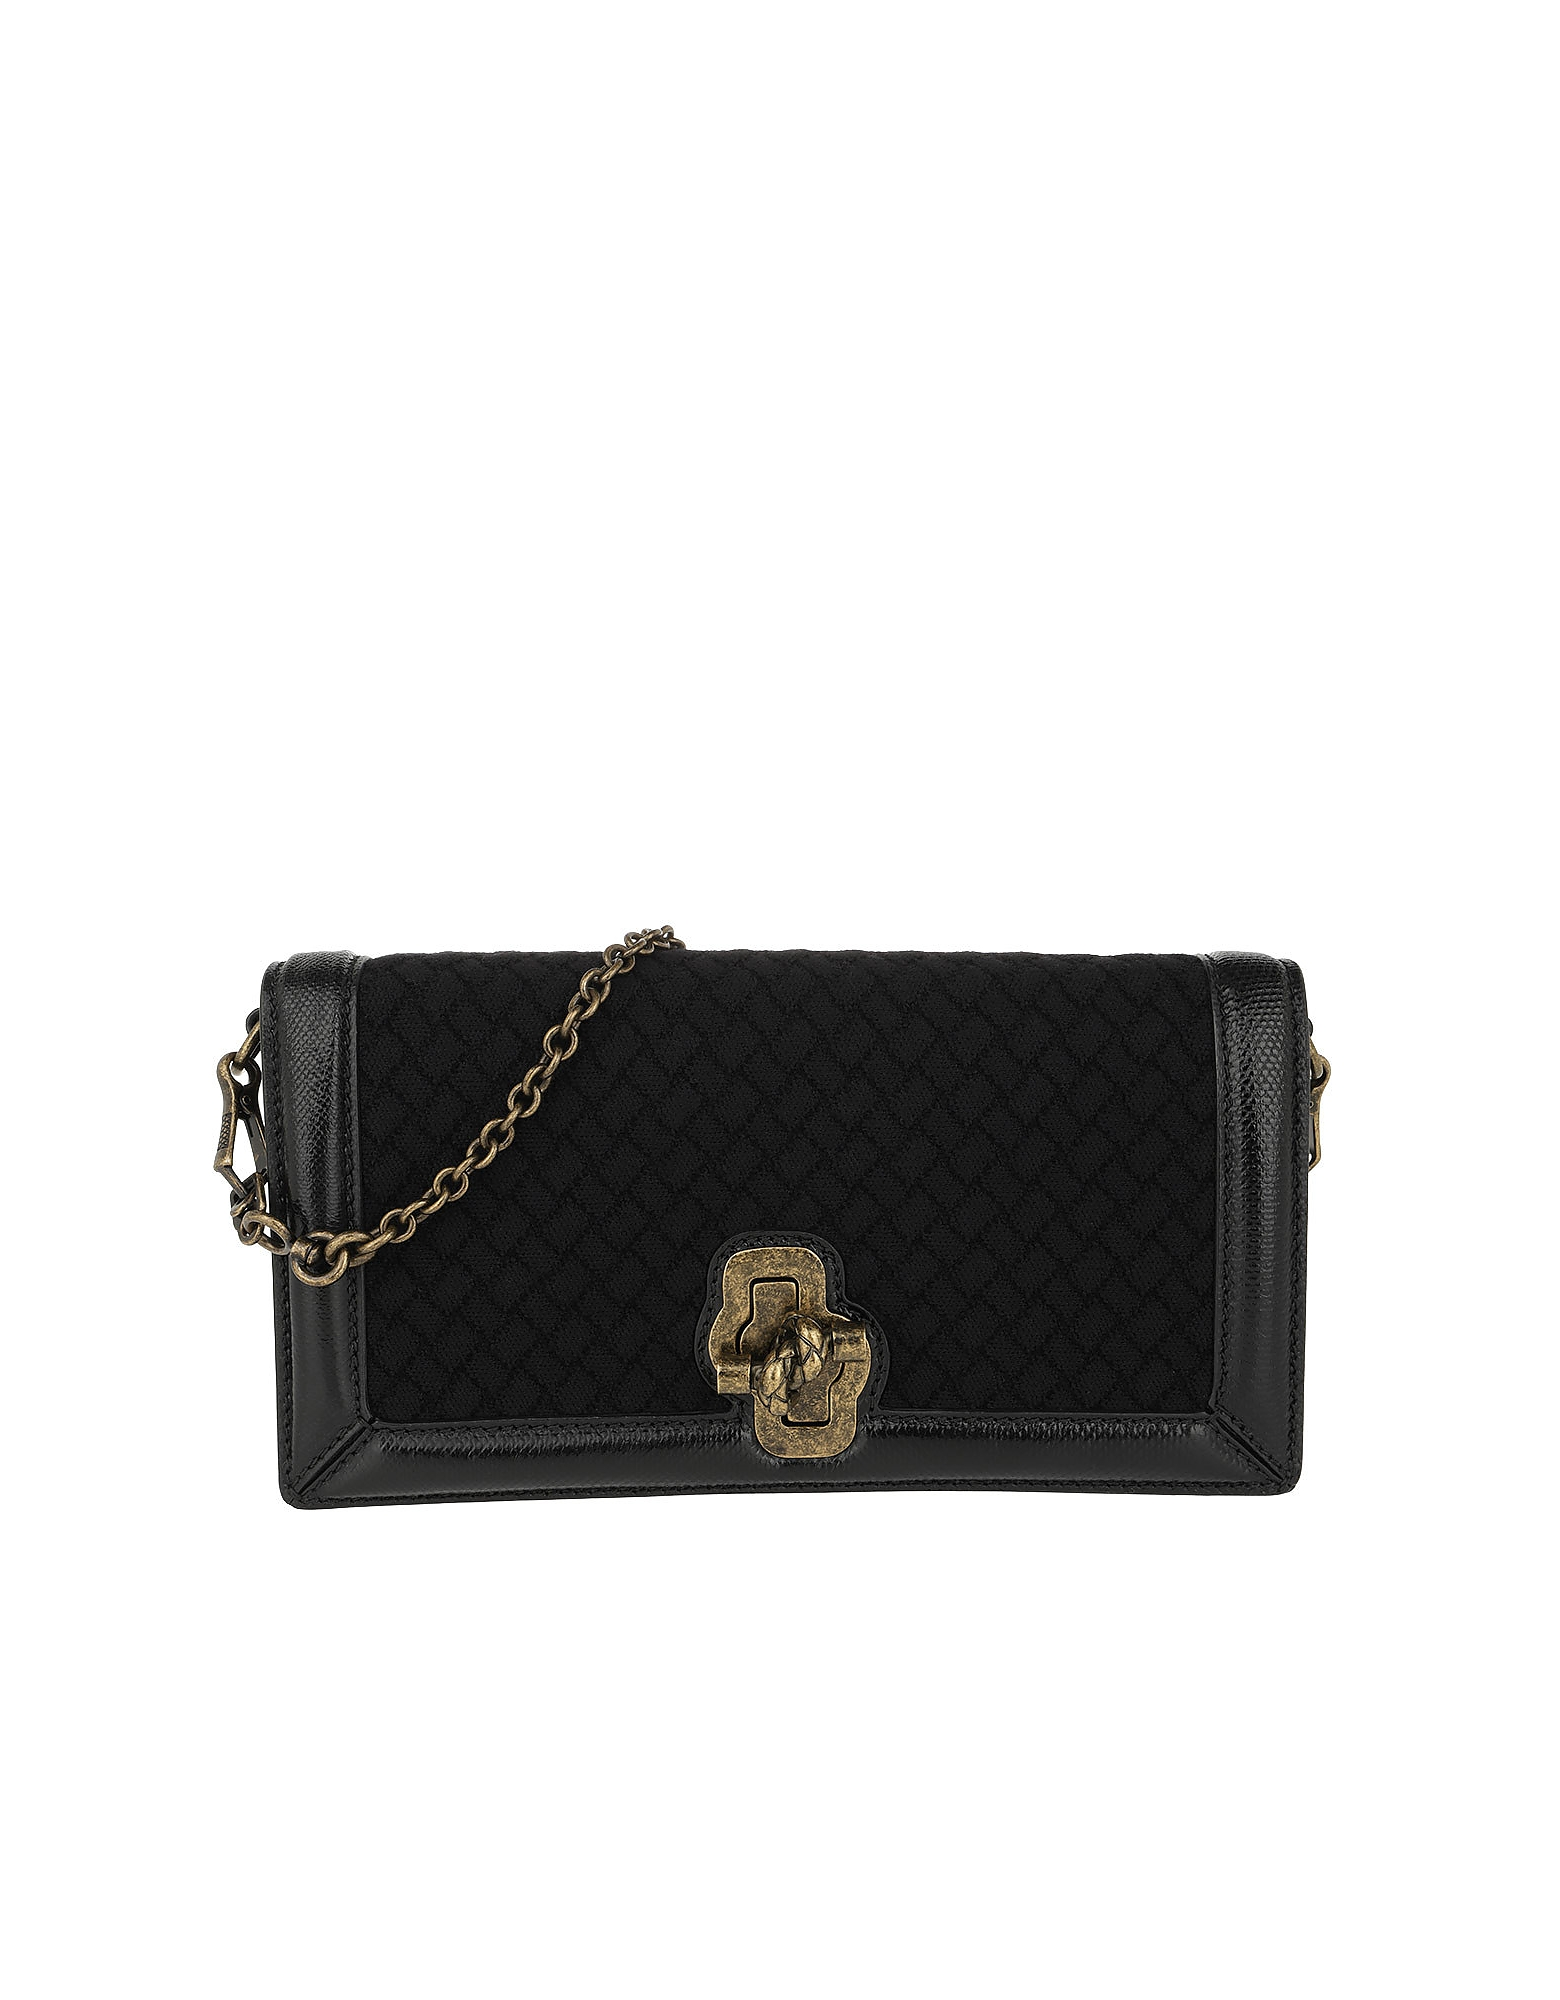 Bottega Veneta Handbags, Intrecciato Knot Clutch Leather Black